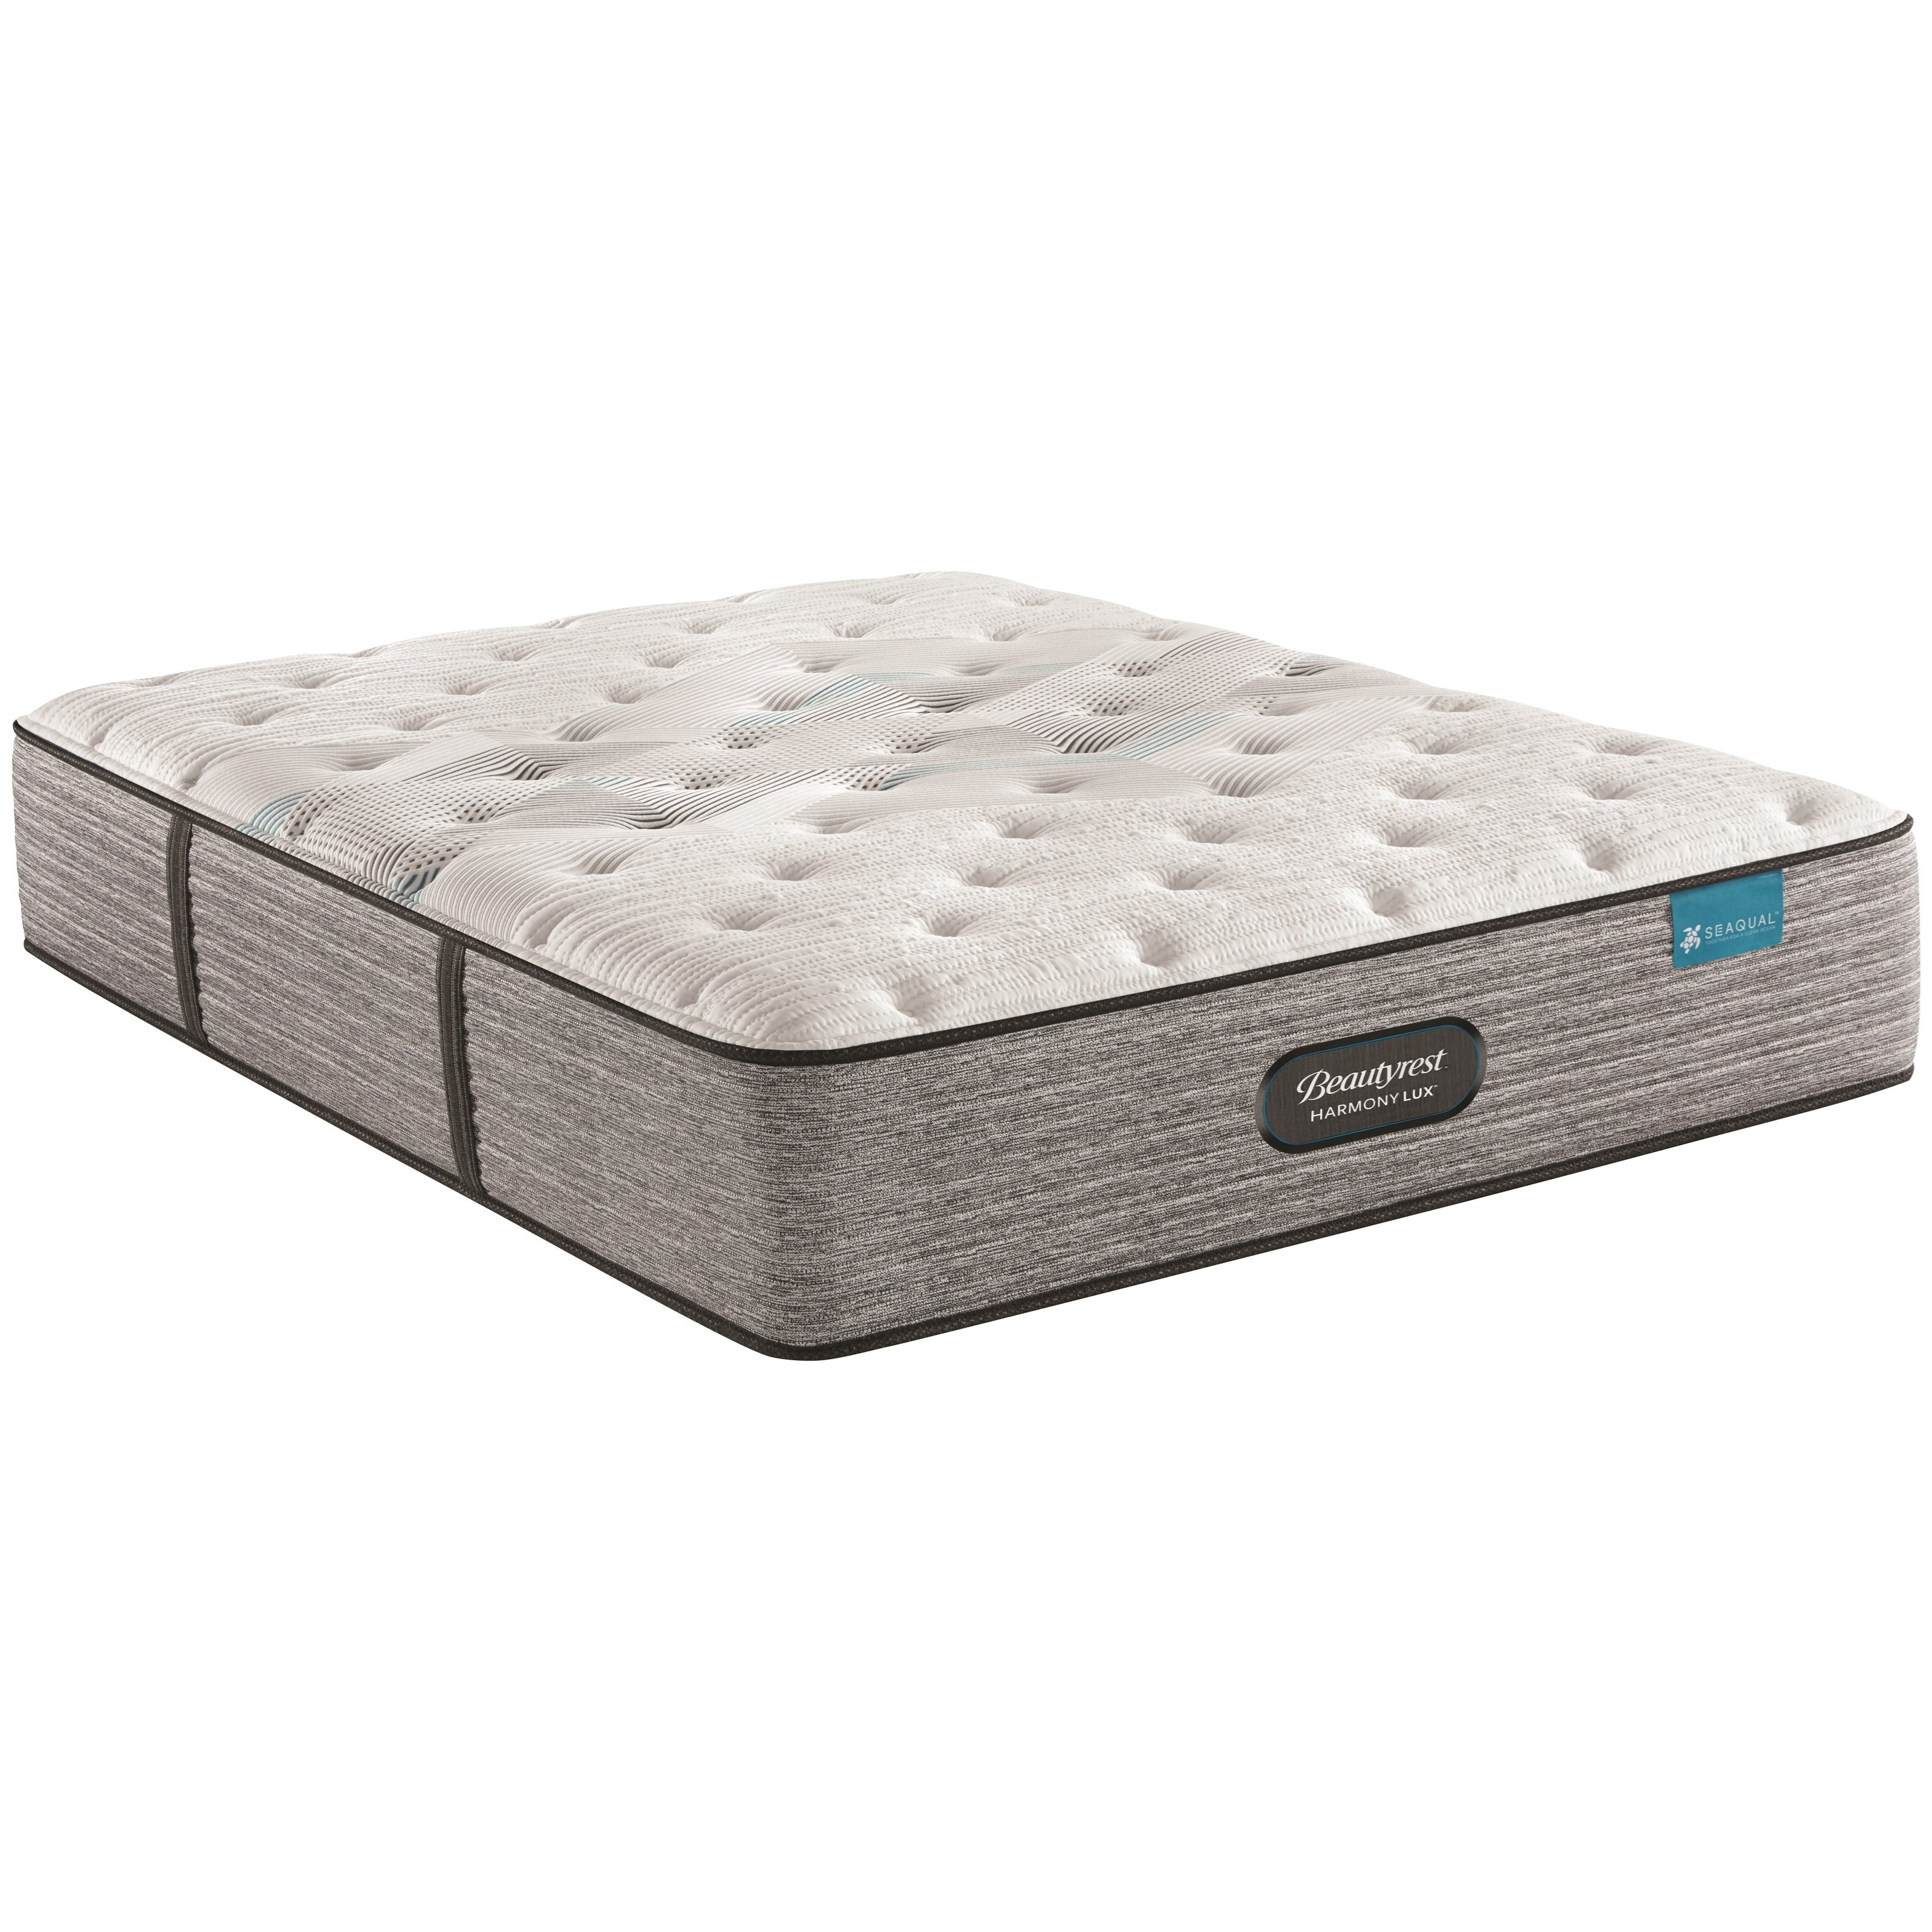 "Twin 13 3/4"" Plush Mattress"